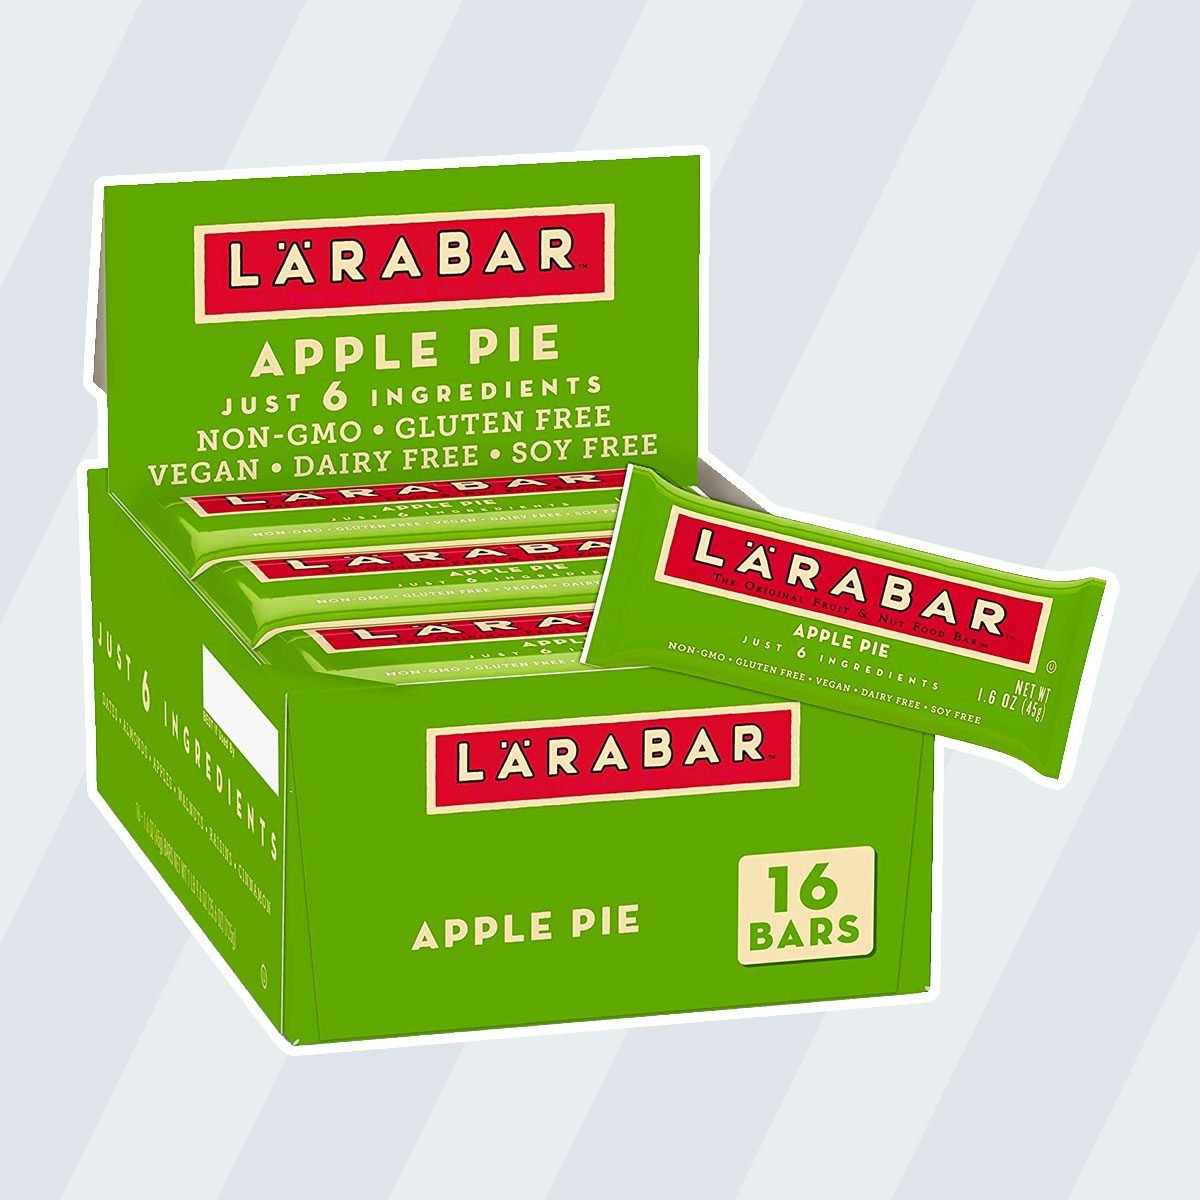 kosher snacks Larabar Gluten Free Bar, Apple Pie, 1.6 oz Bars (16 Count)